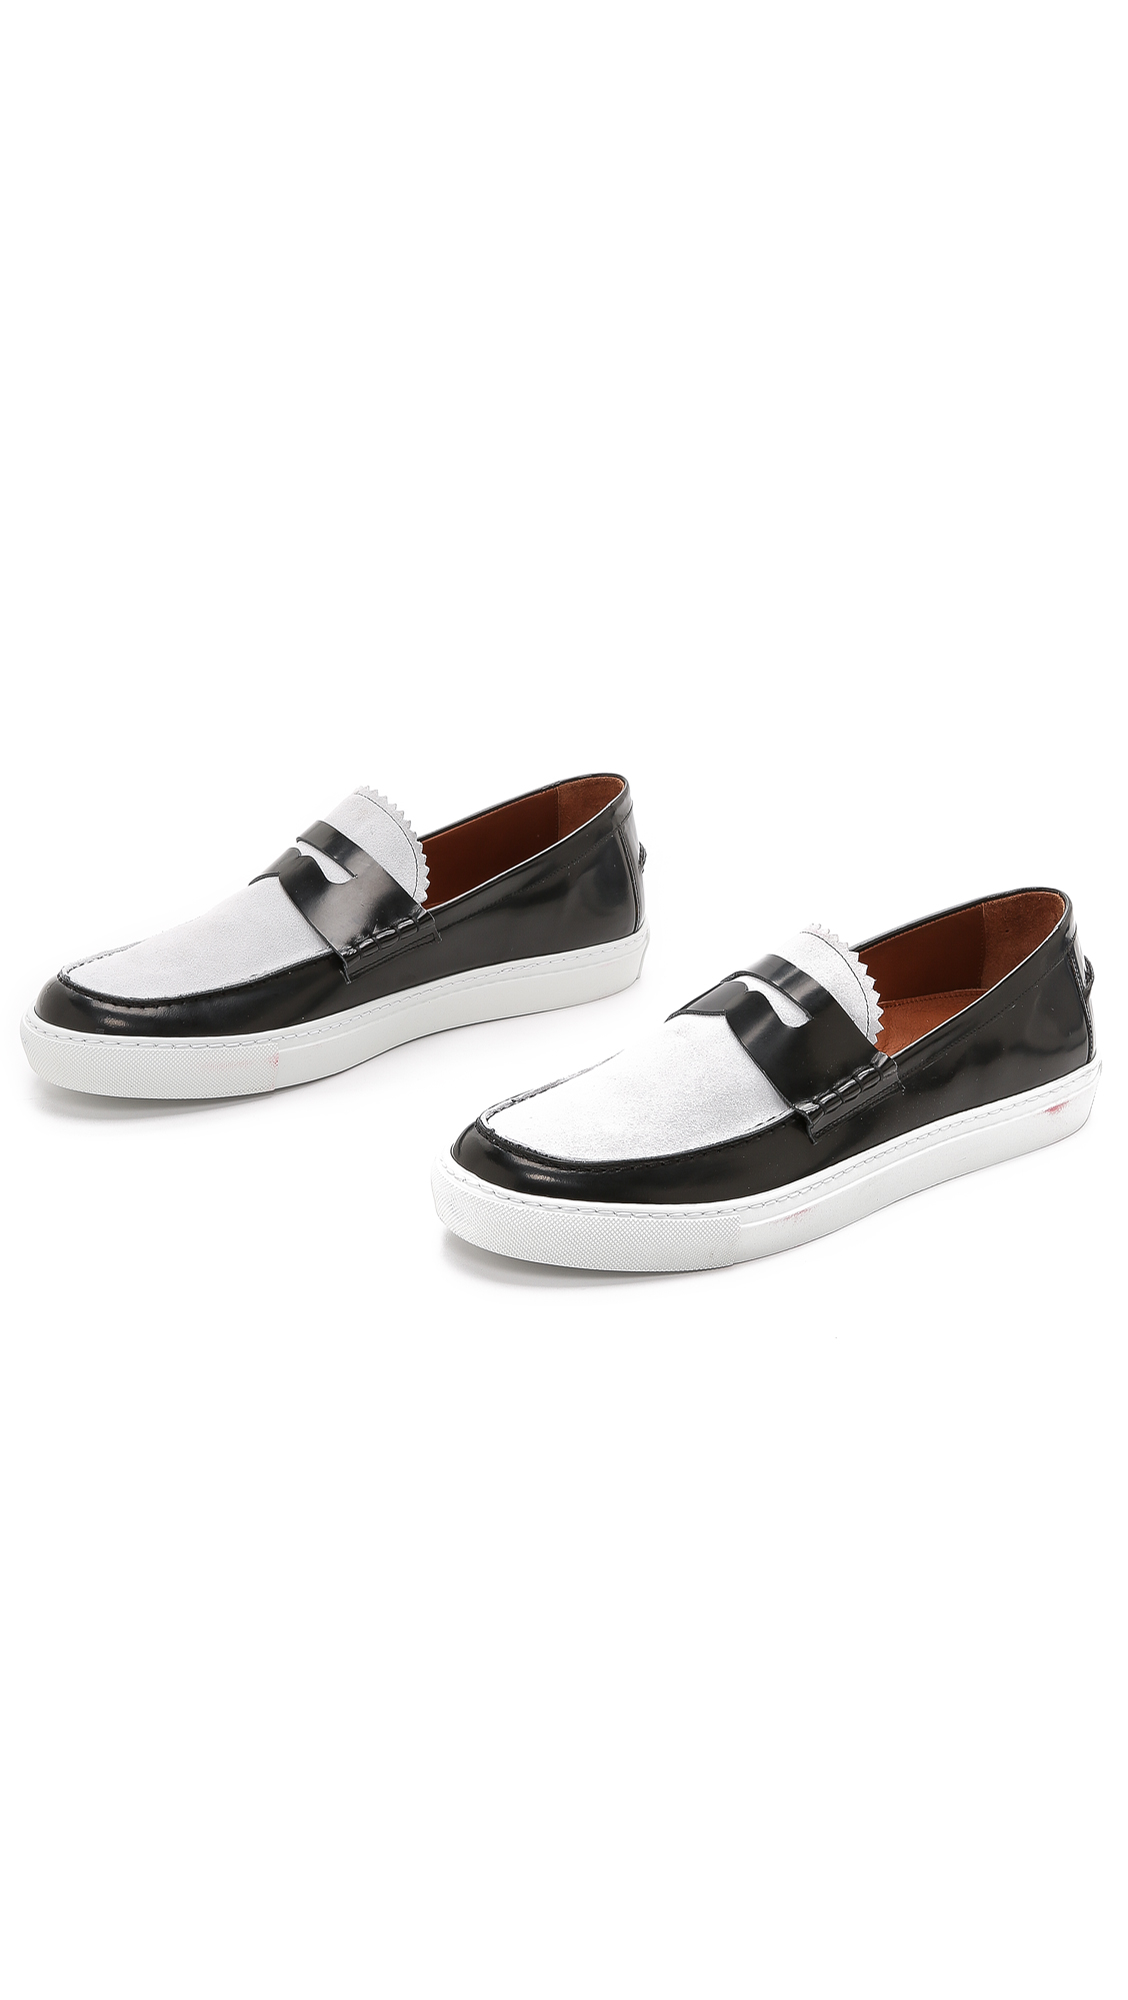 Band Of Outsiders Penny Loafer Sneakers In Black For Men